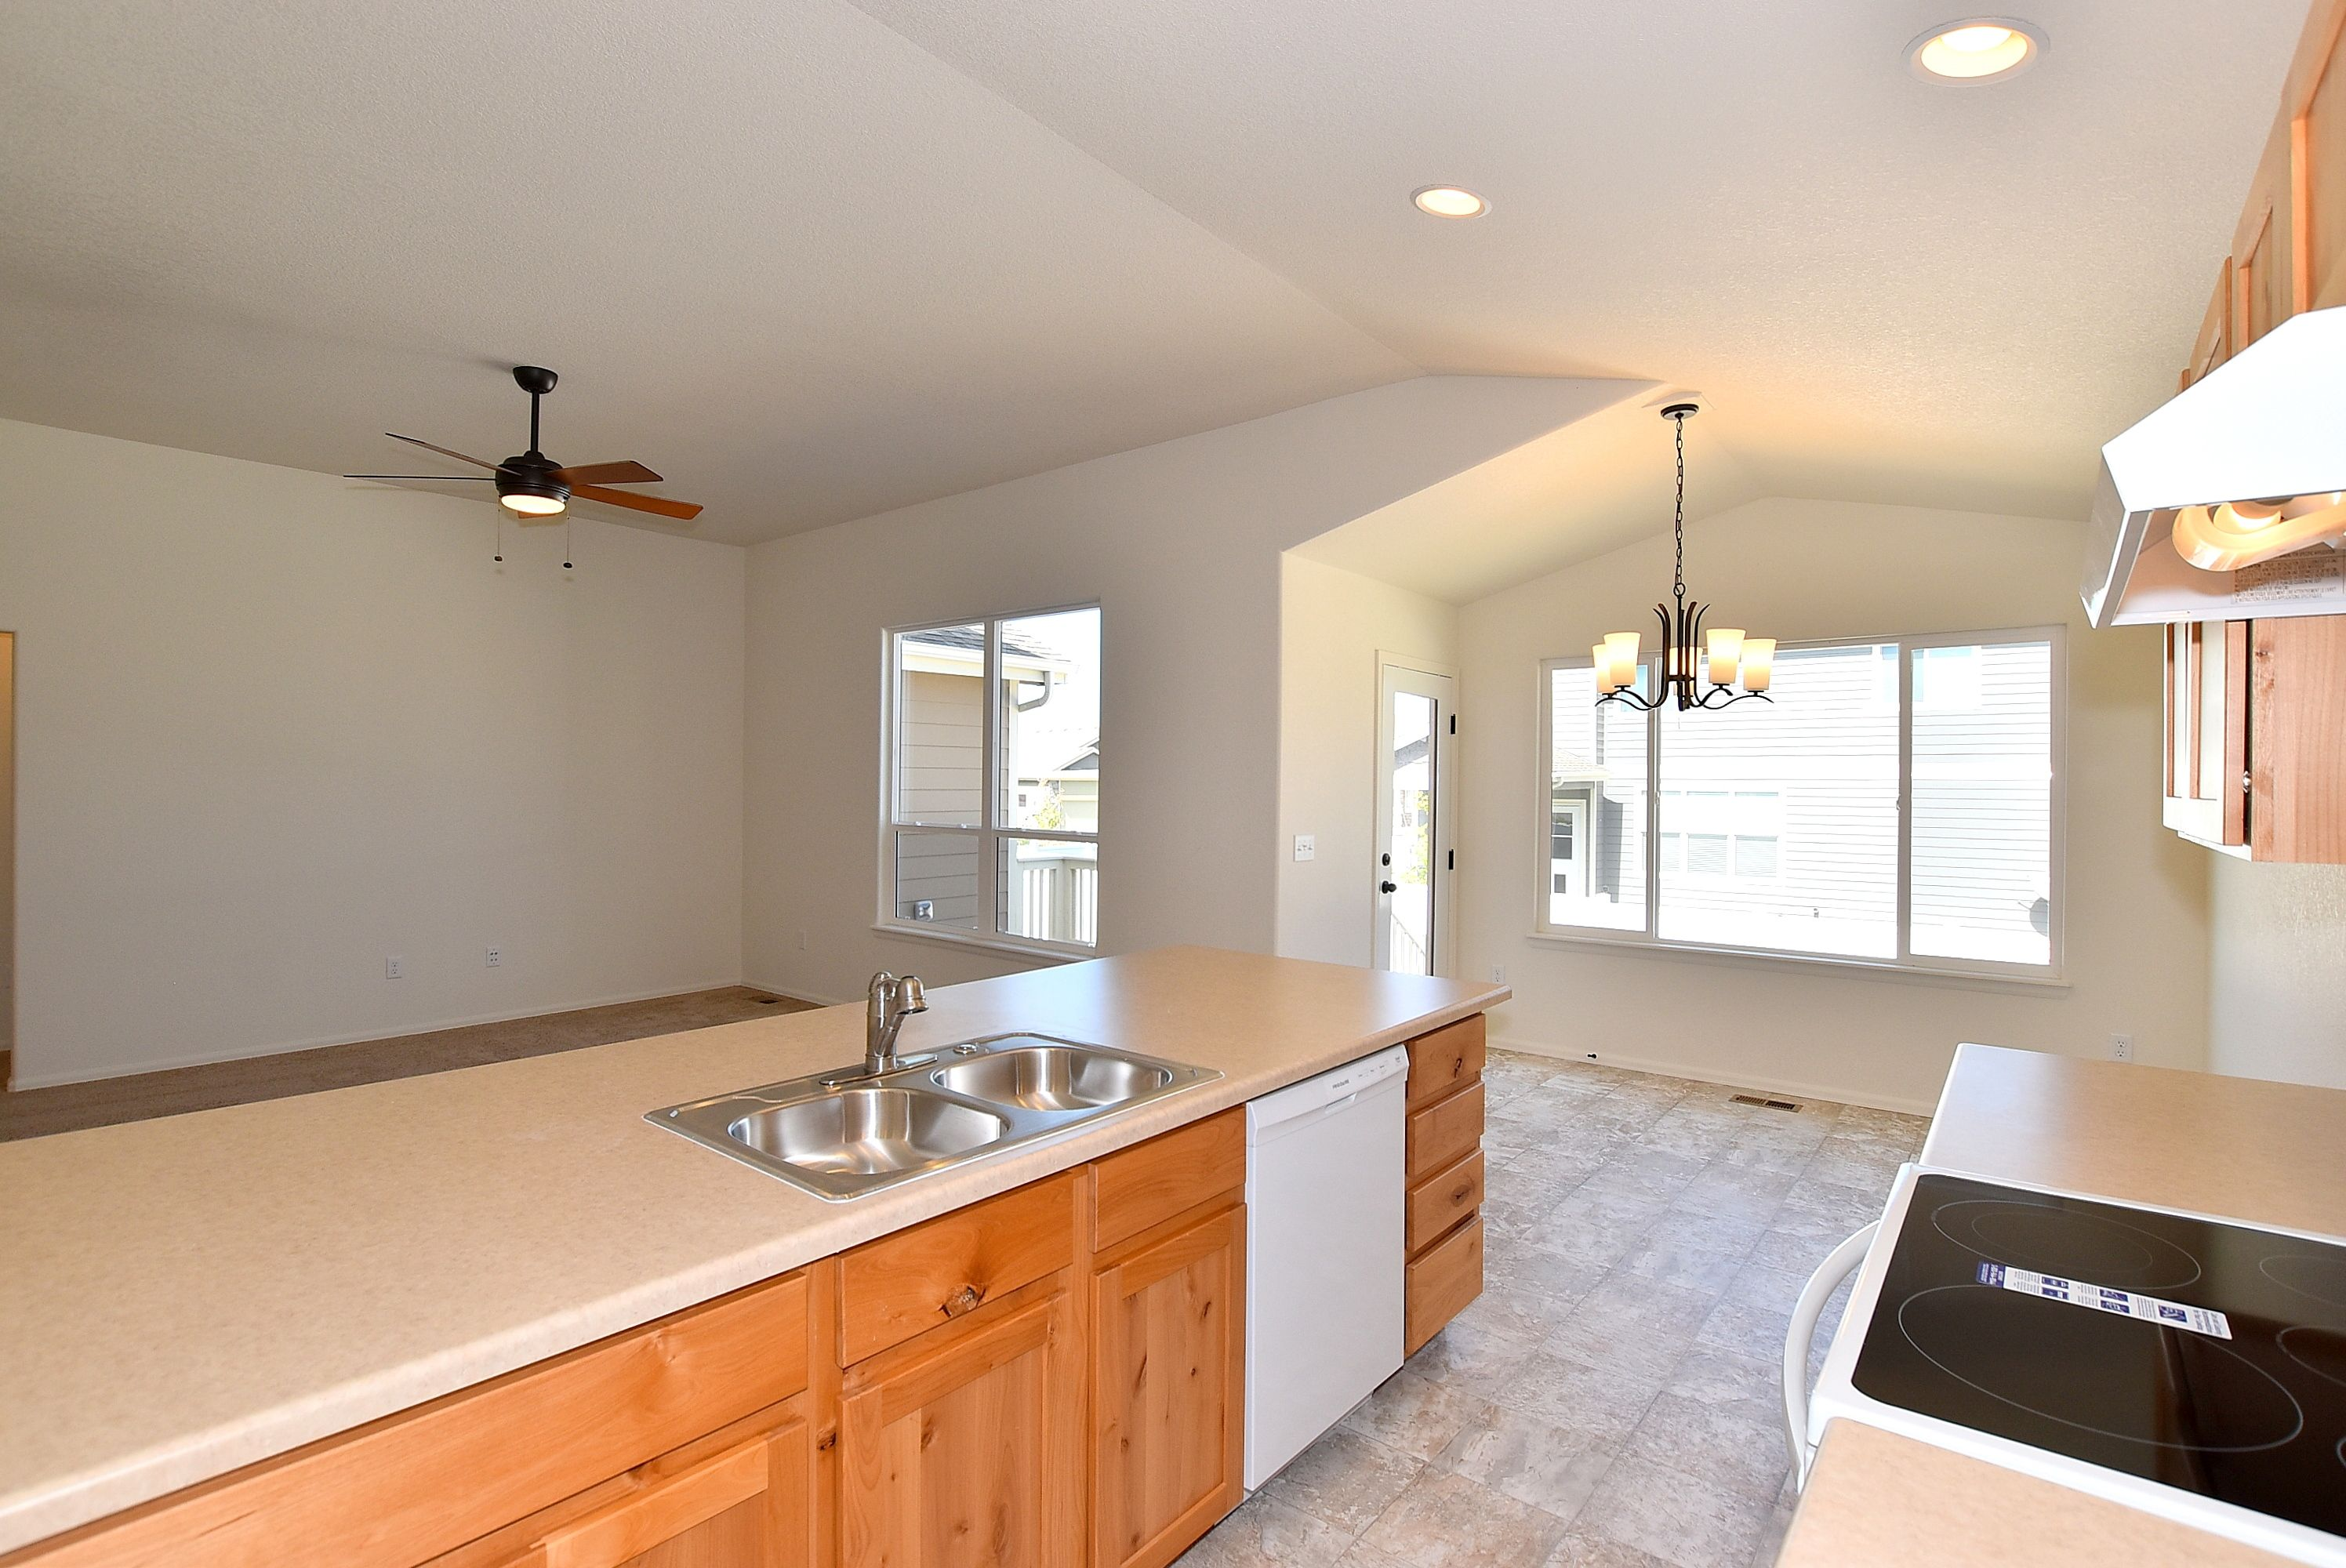 Kitchen featured in the Arizona By Journey Homes in Greeley, CO